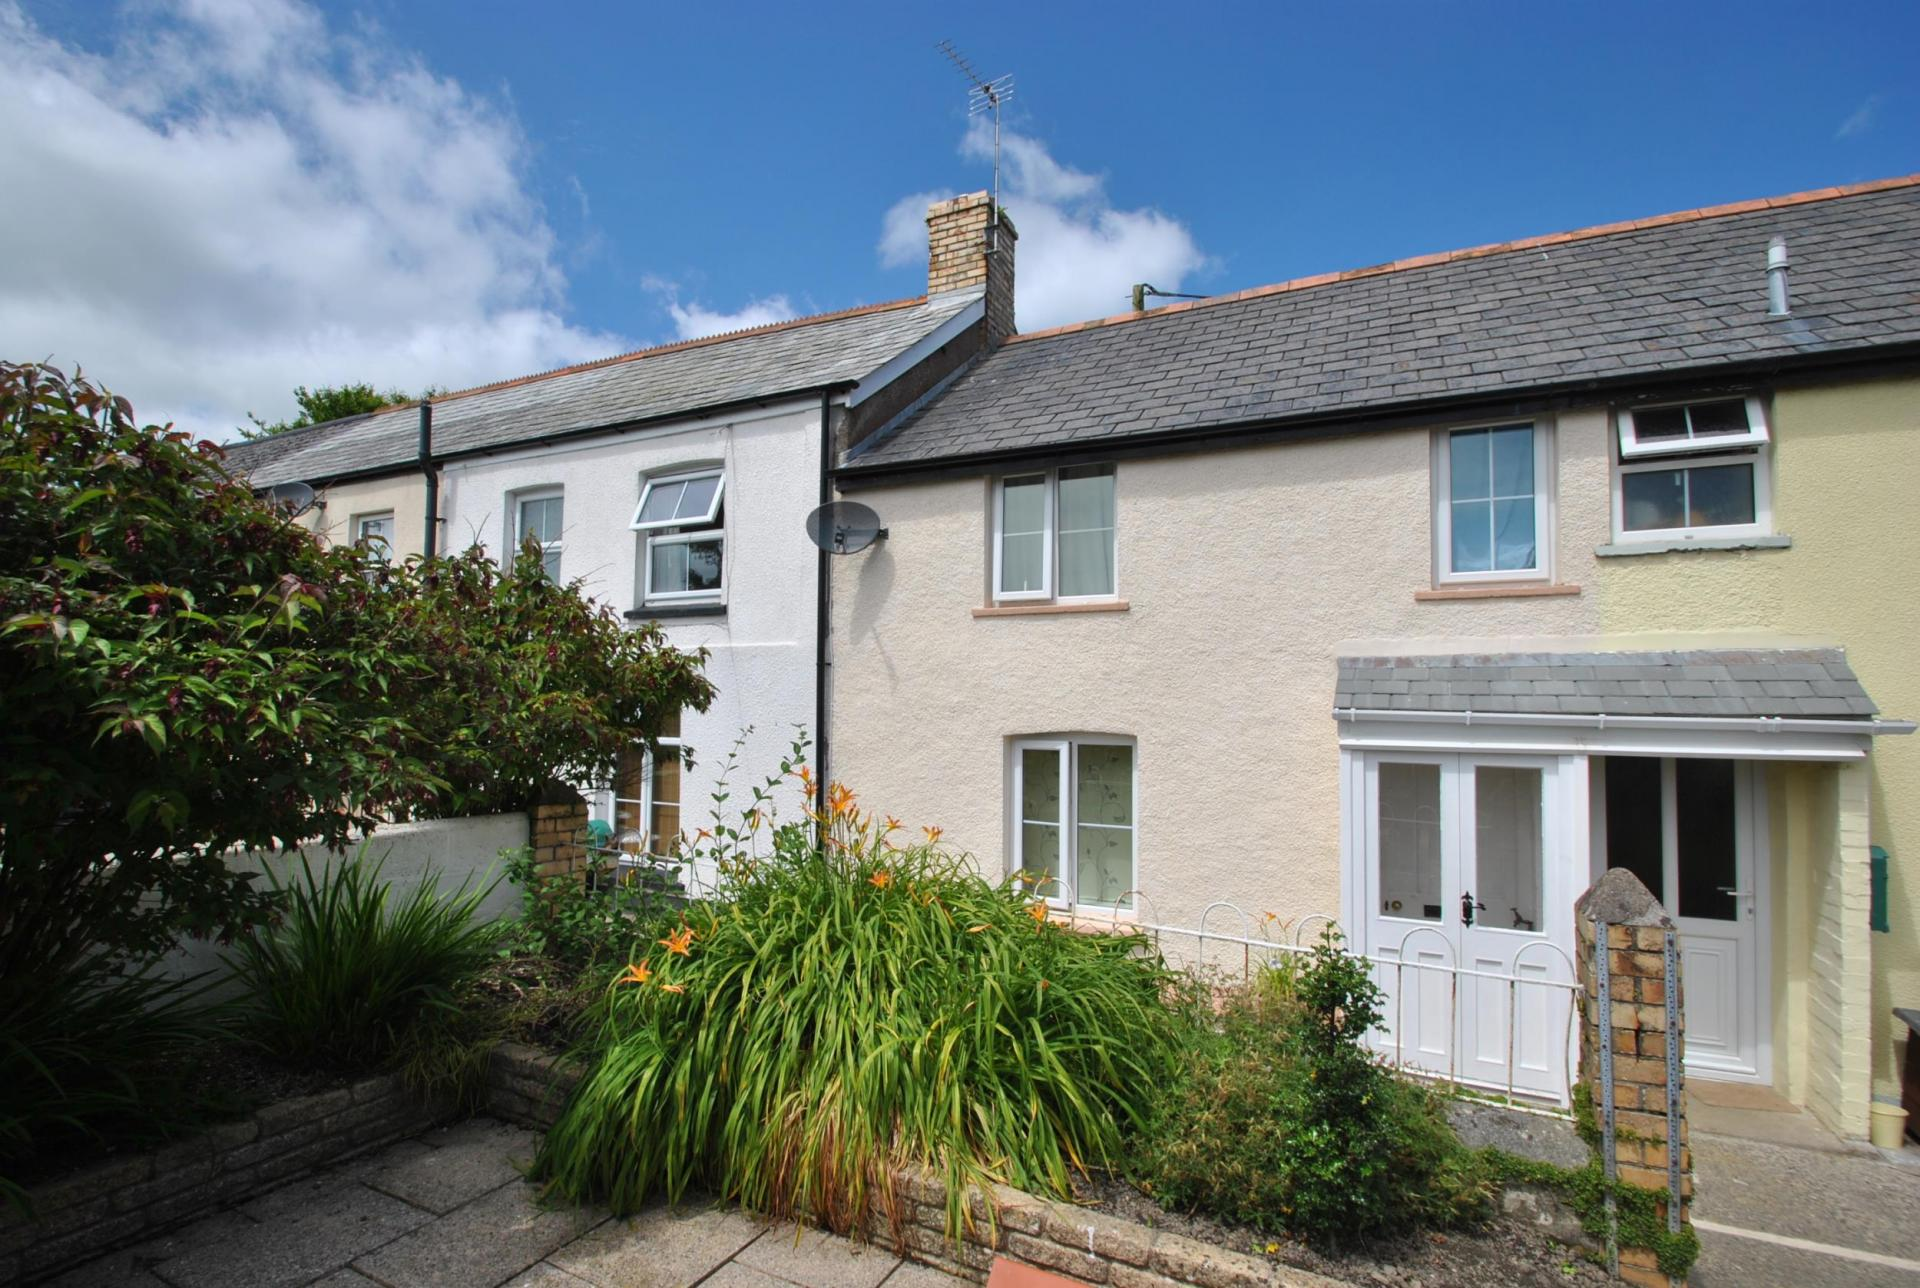 2 Bedroom Terraced House For Sale In Holsworthy